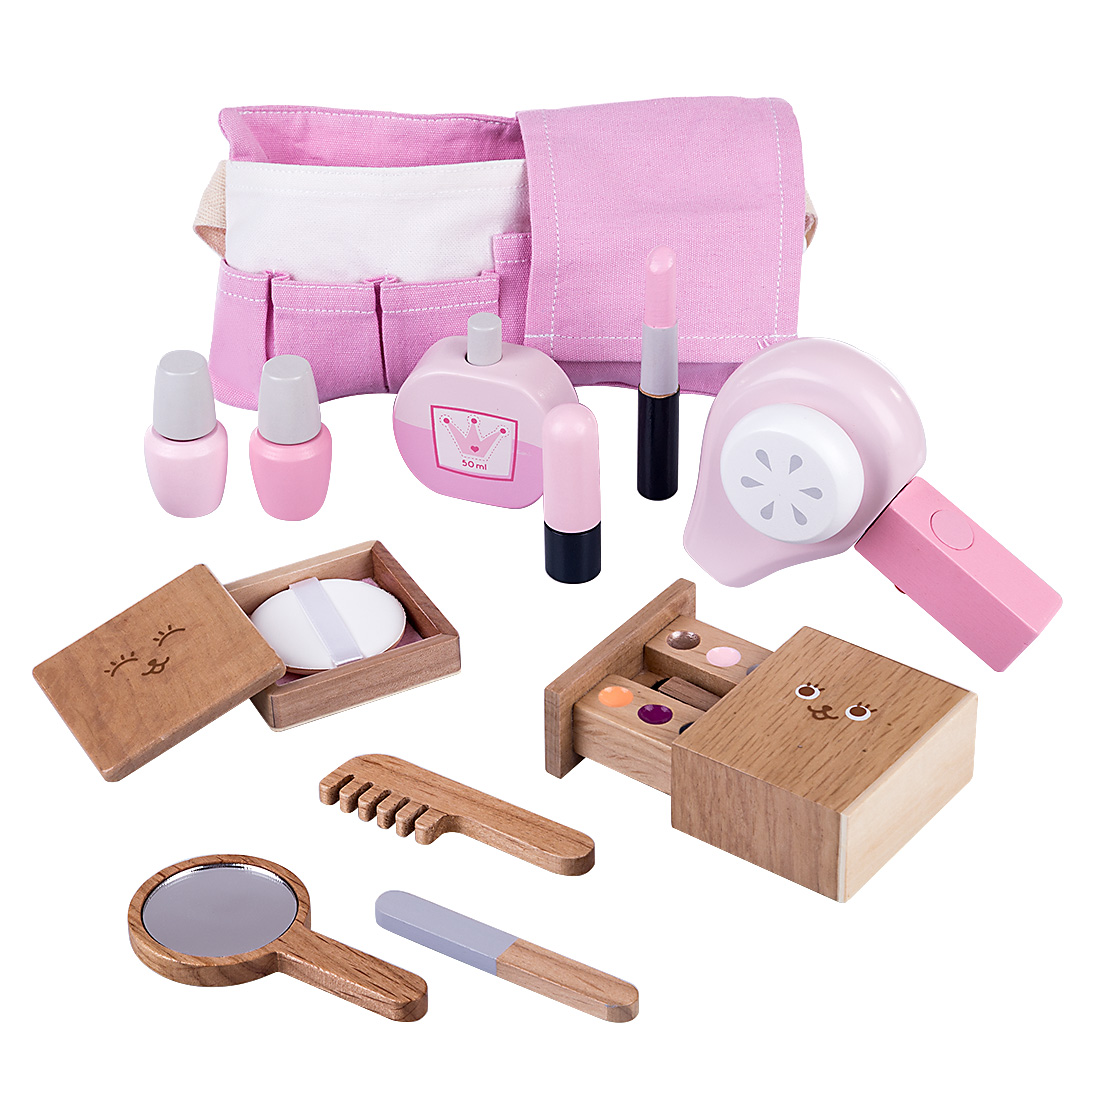 12Pcs Children Wooden Makeup Pretend Play Set Simulation Hair Dryer Toys Kids Birthdaty Gifts 2020 New Arrival